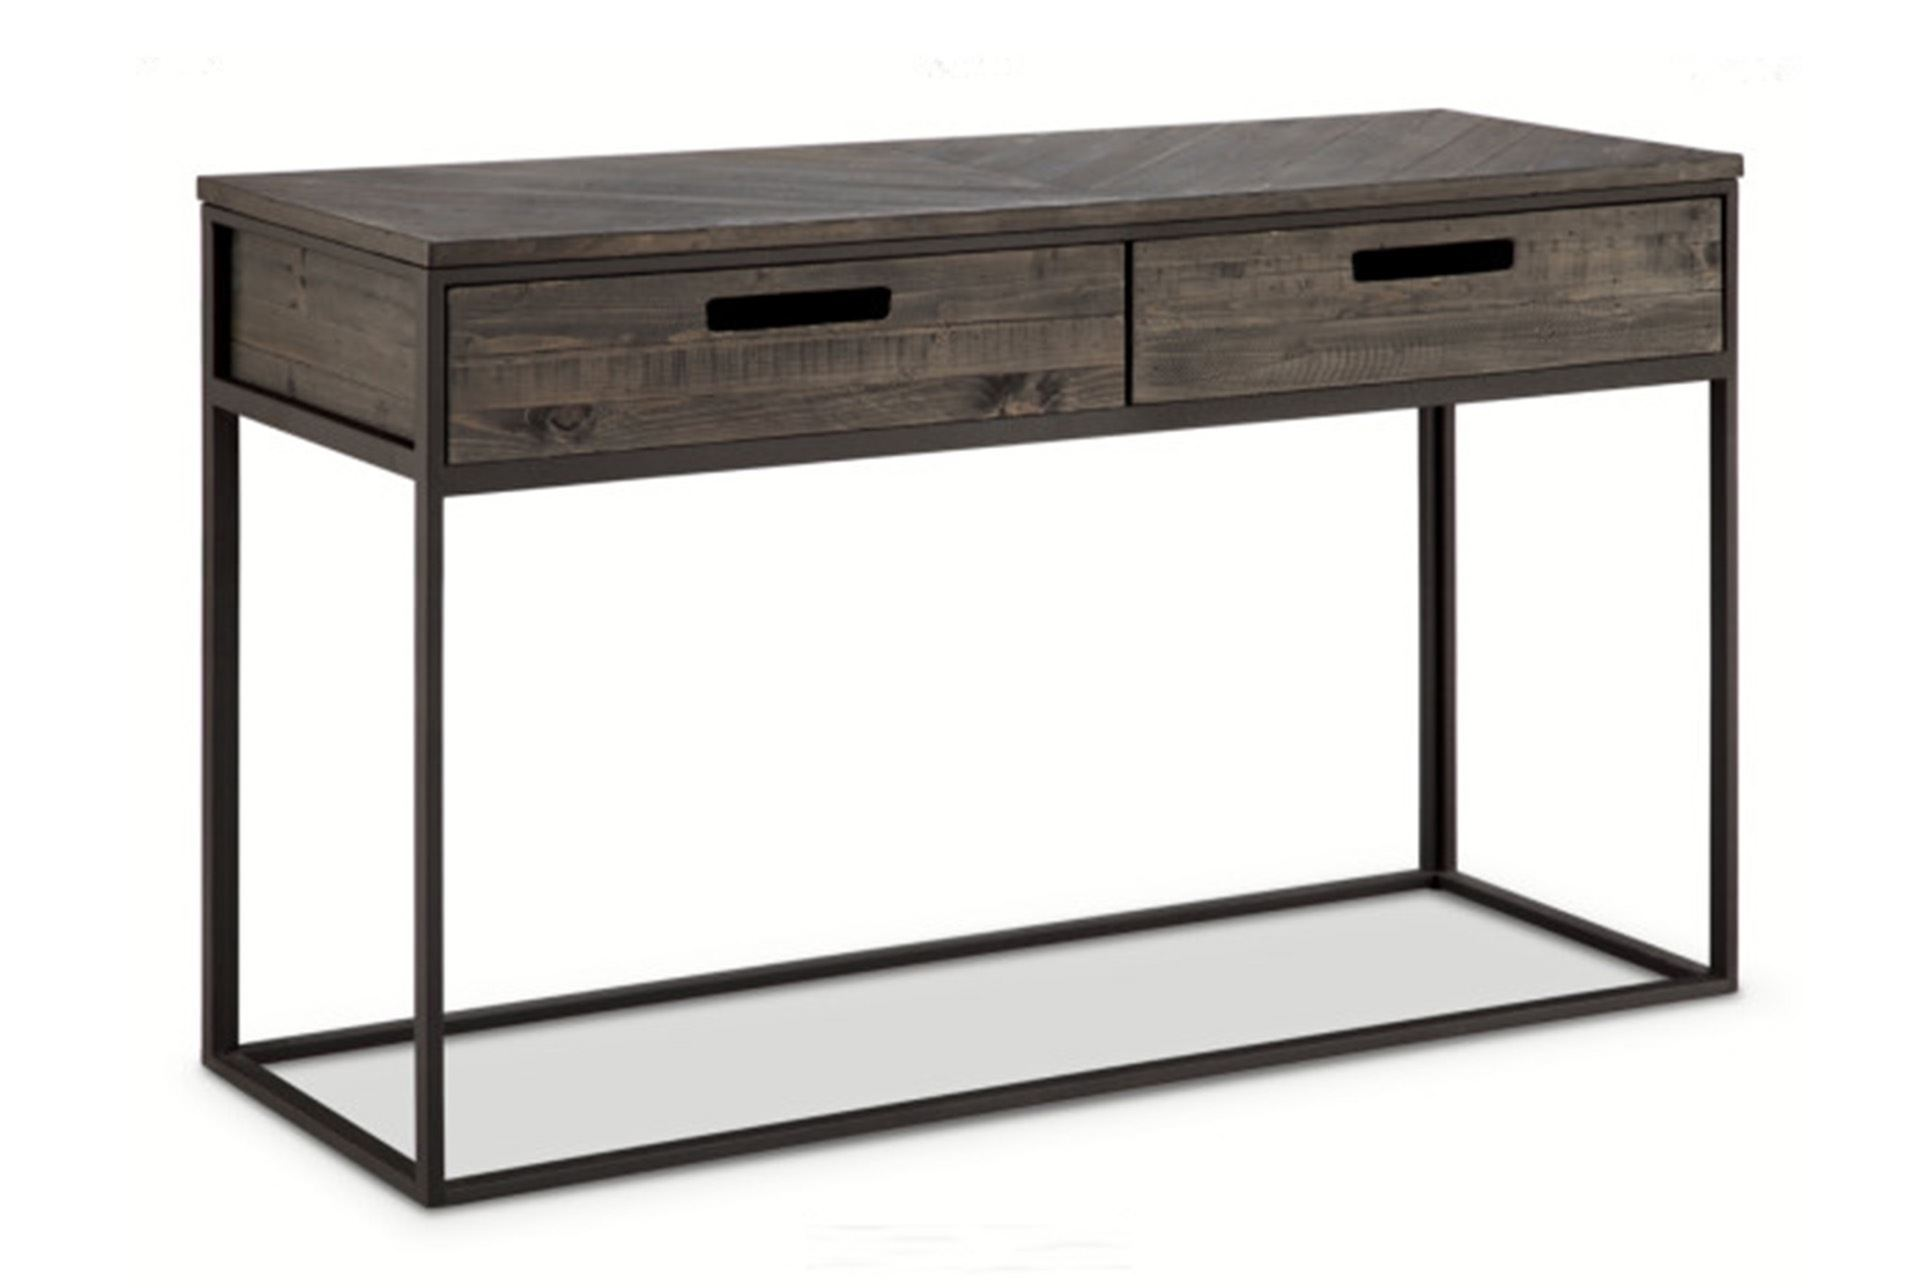 Anson sofa table living spaces for Living spaces sofa table